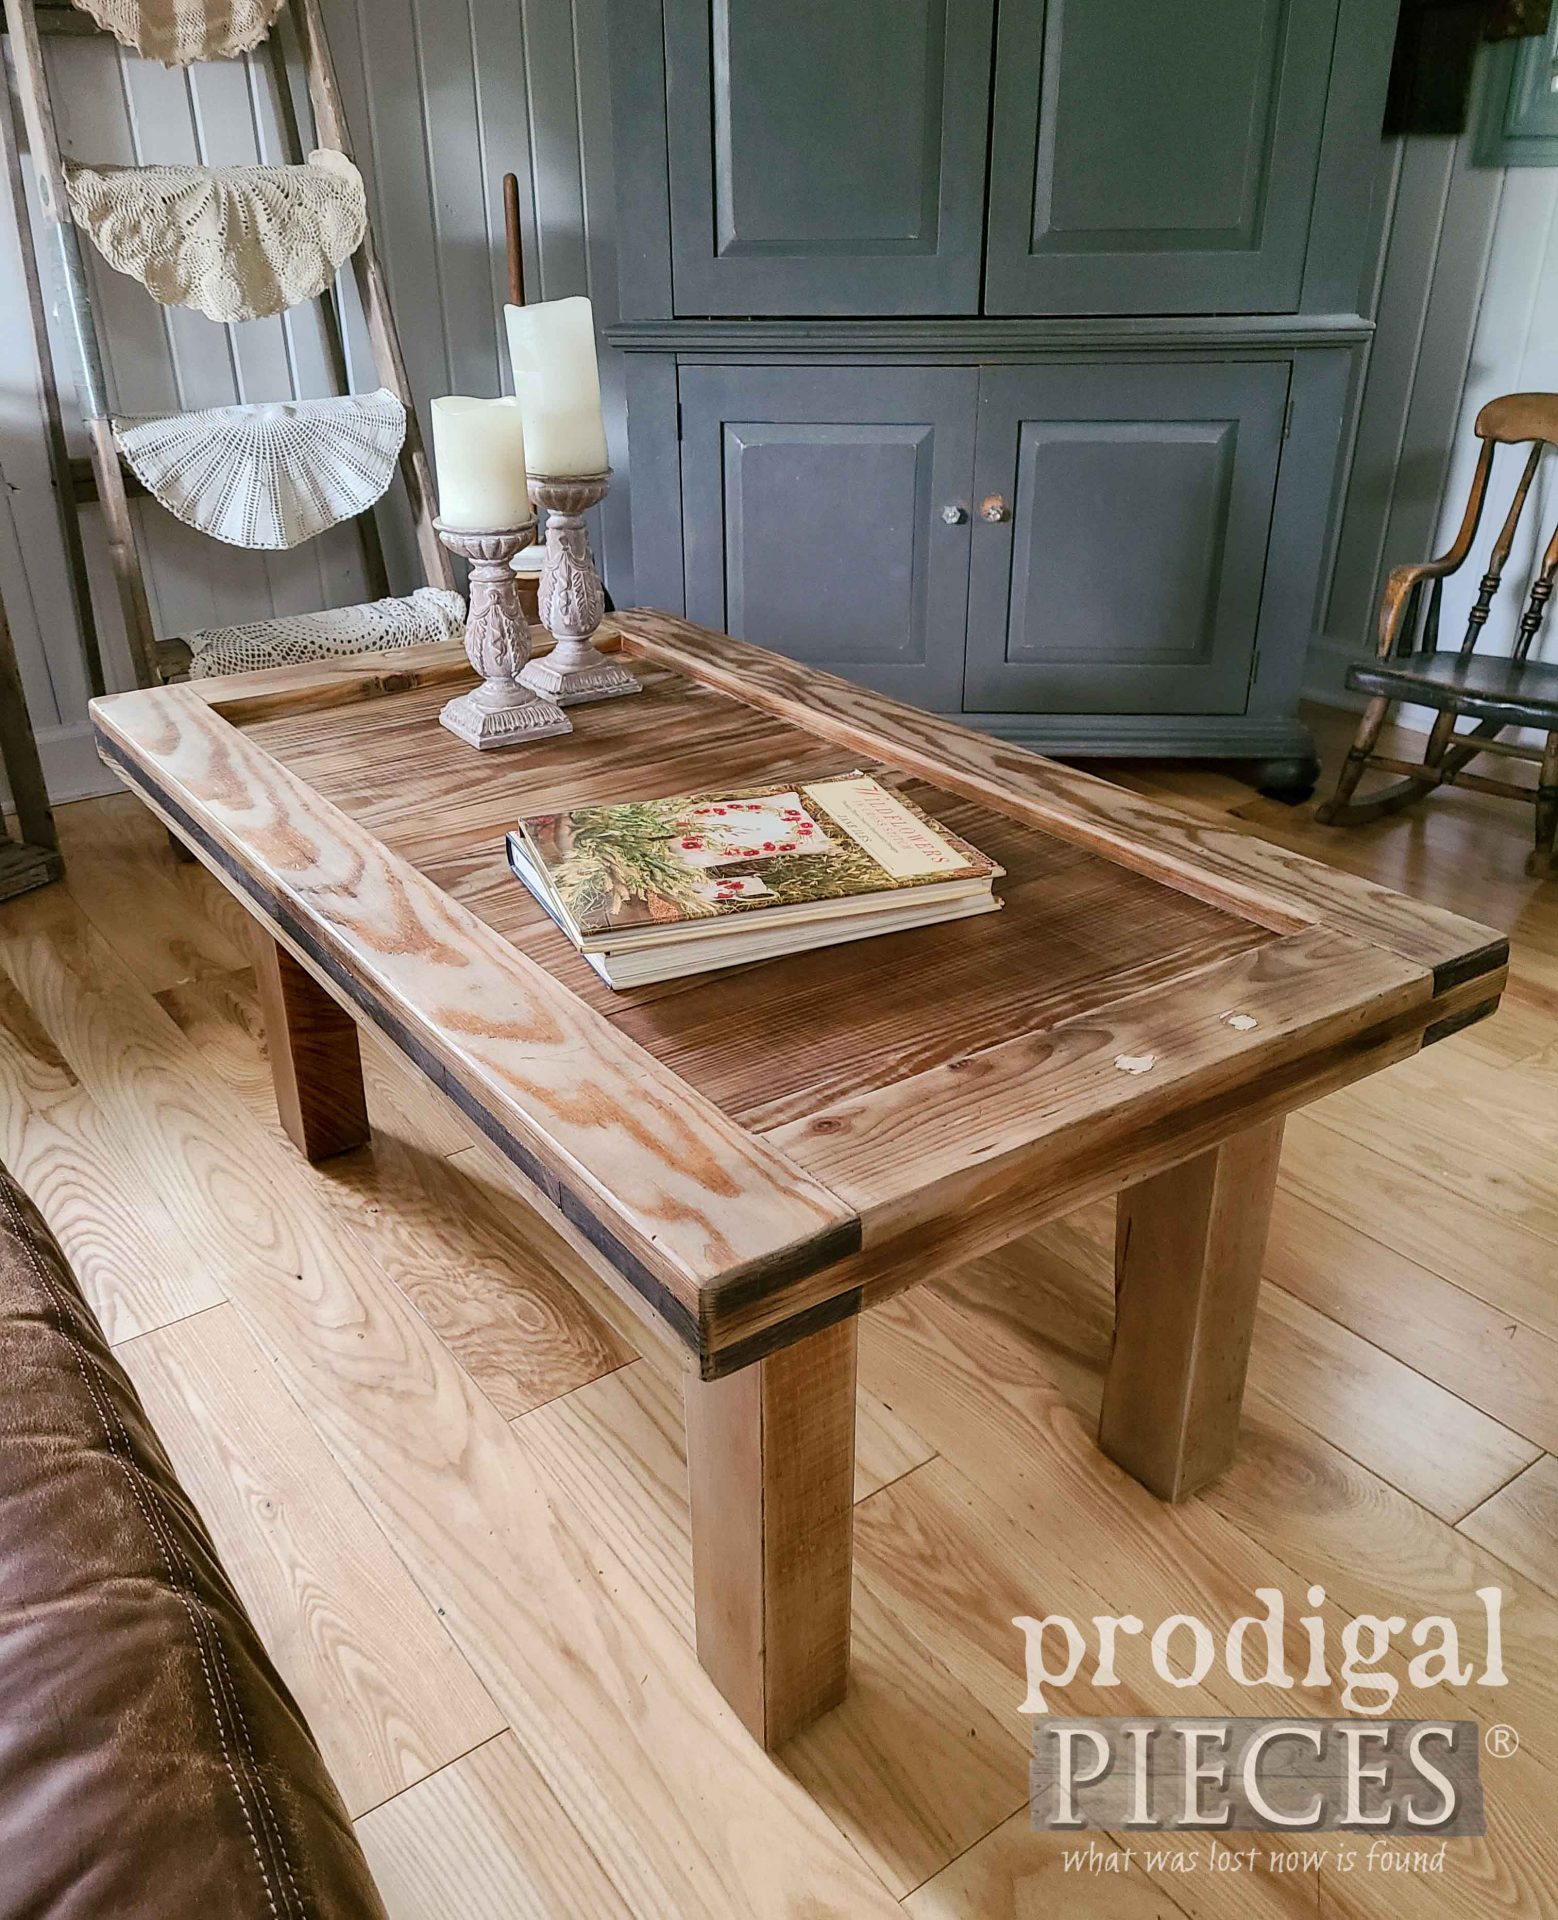 Reclaimed Farmhouse Coffee Table Built by Prodigal Pieces | prodigalpieces.com #prodigalpieces #farmhouse #home #furniture #homedecor